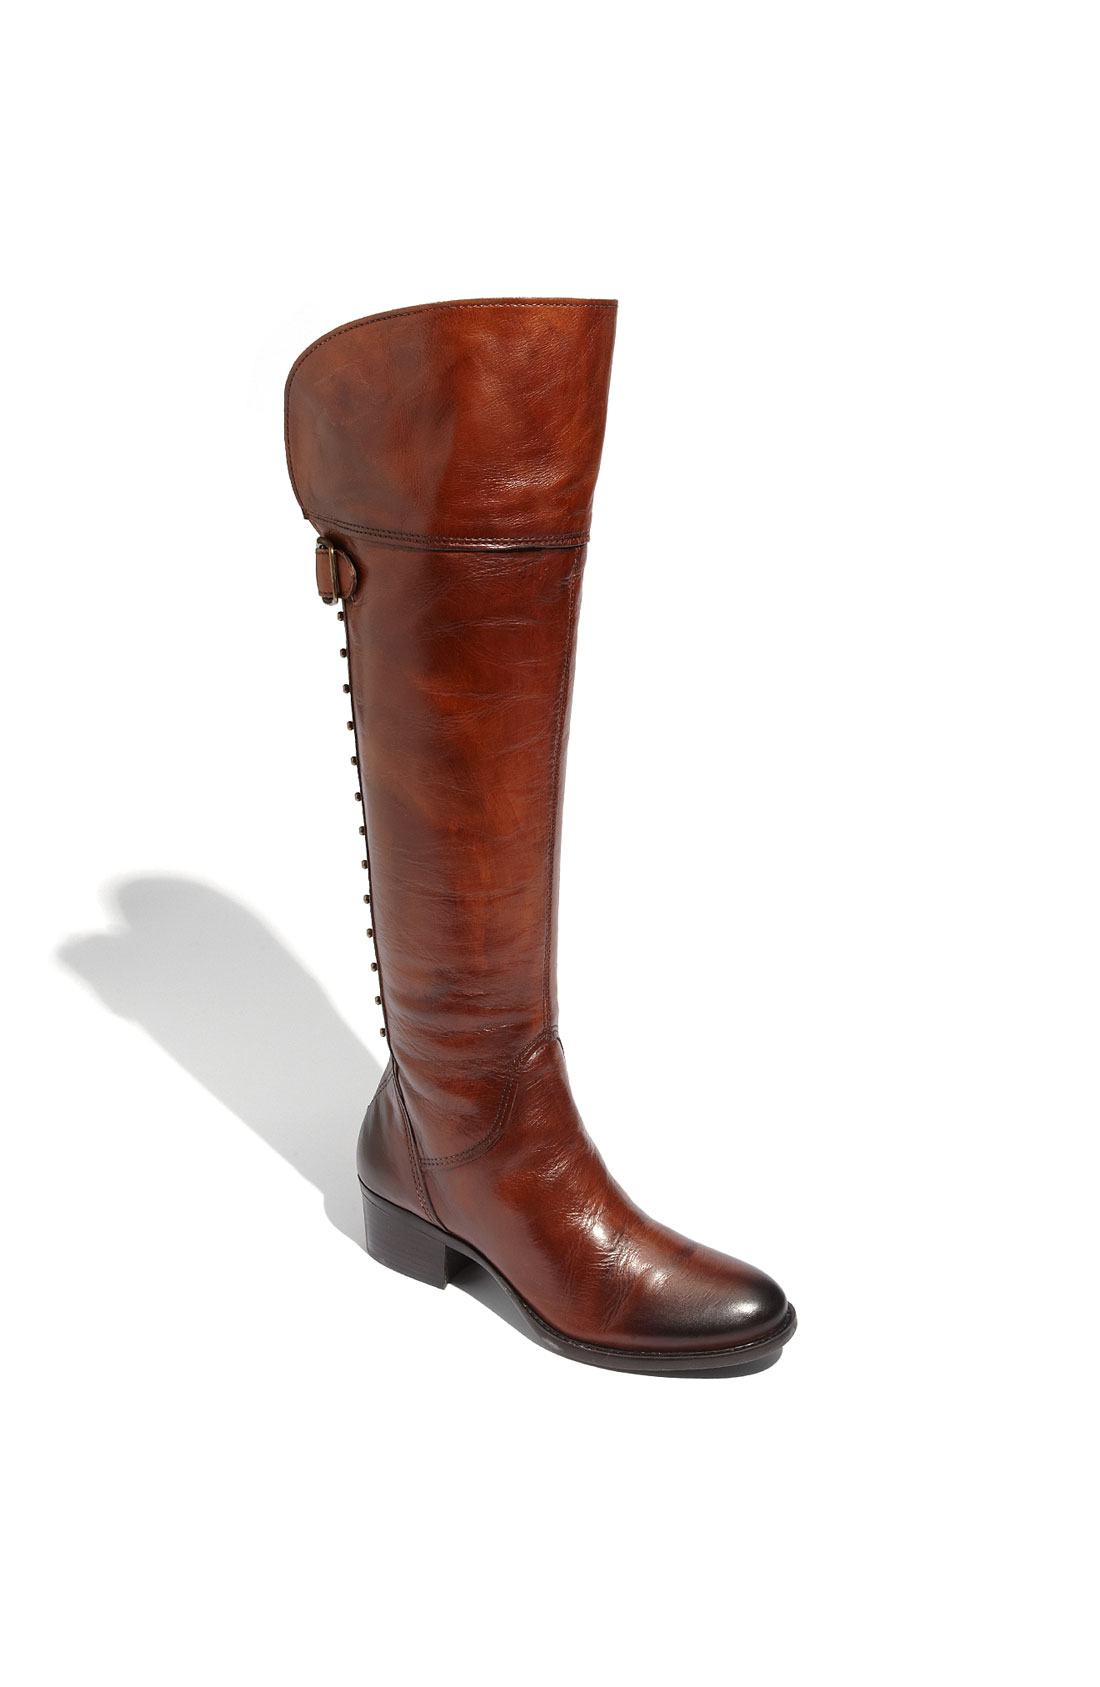 Vince Camuto Bilco Boot (nordstrom Exclusive) in Brown (brandy)